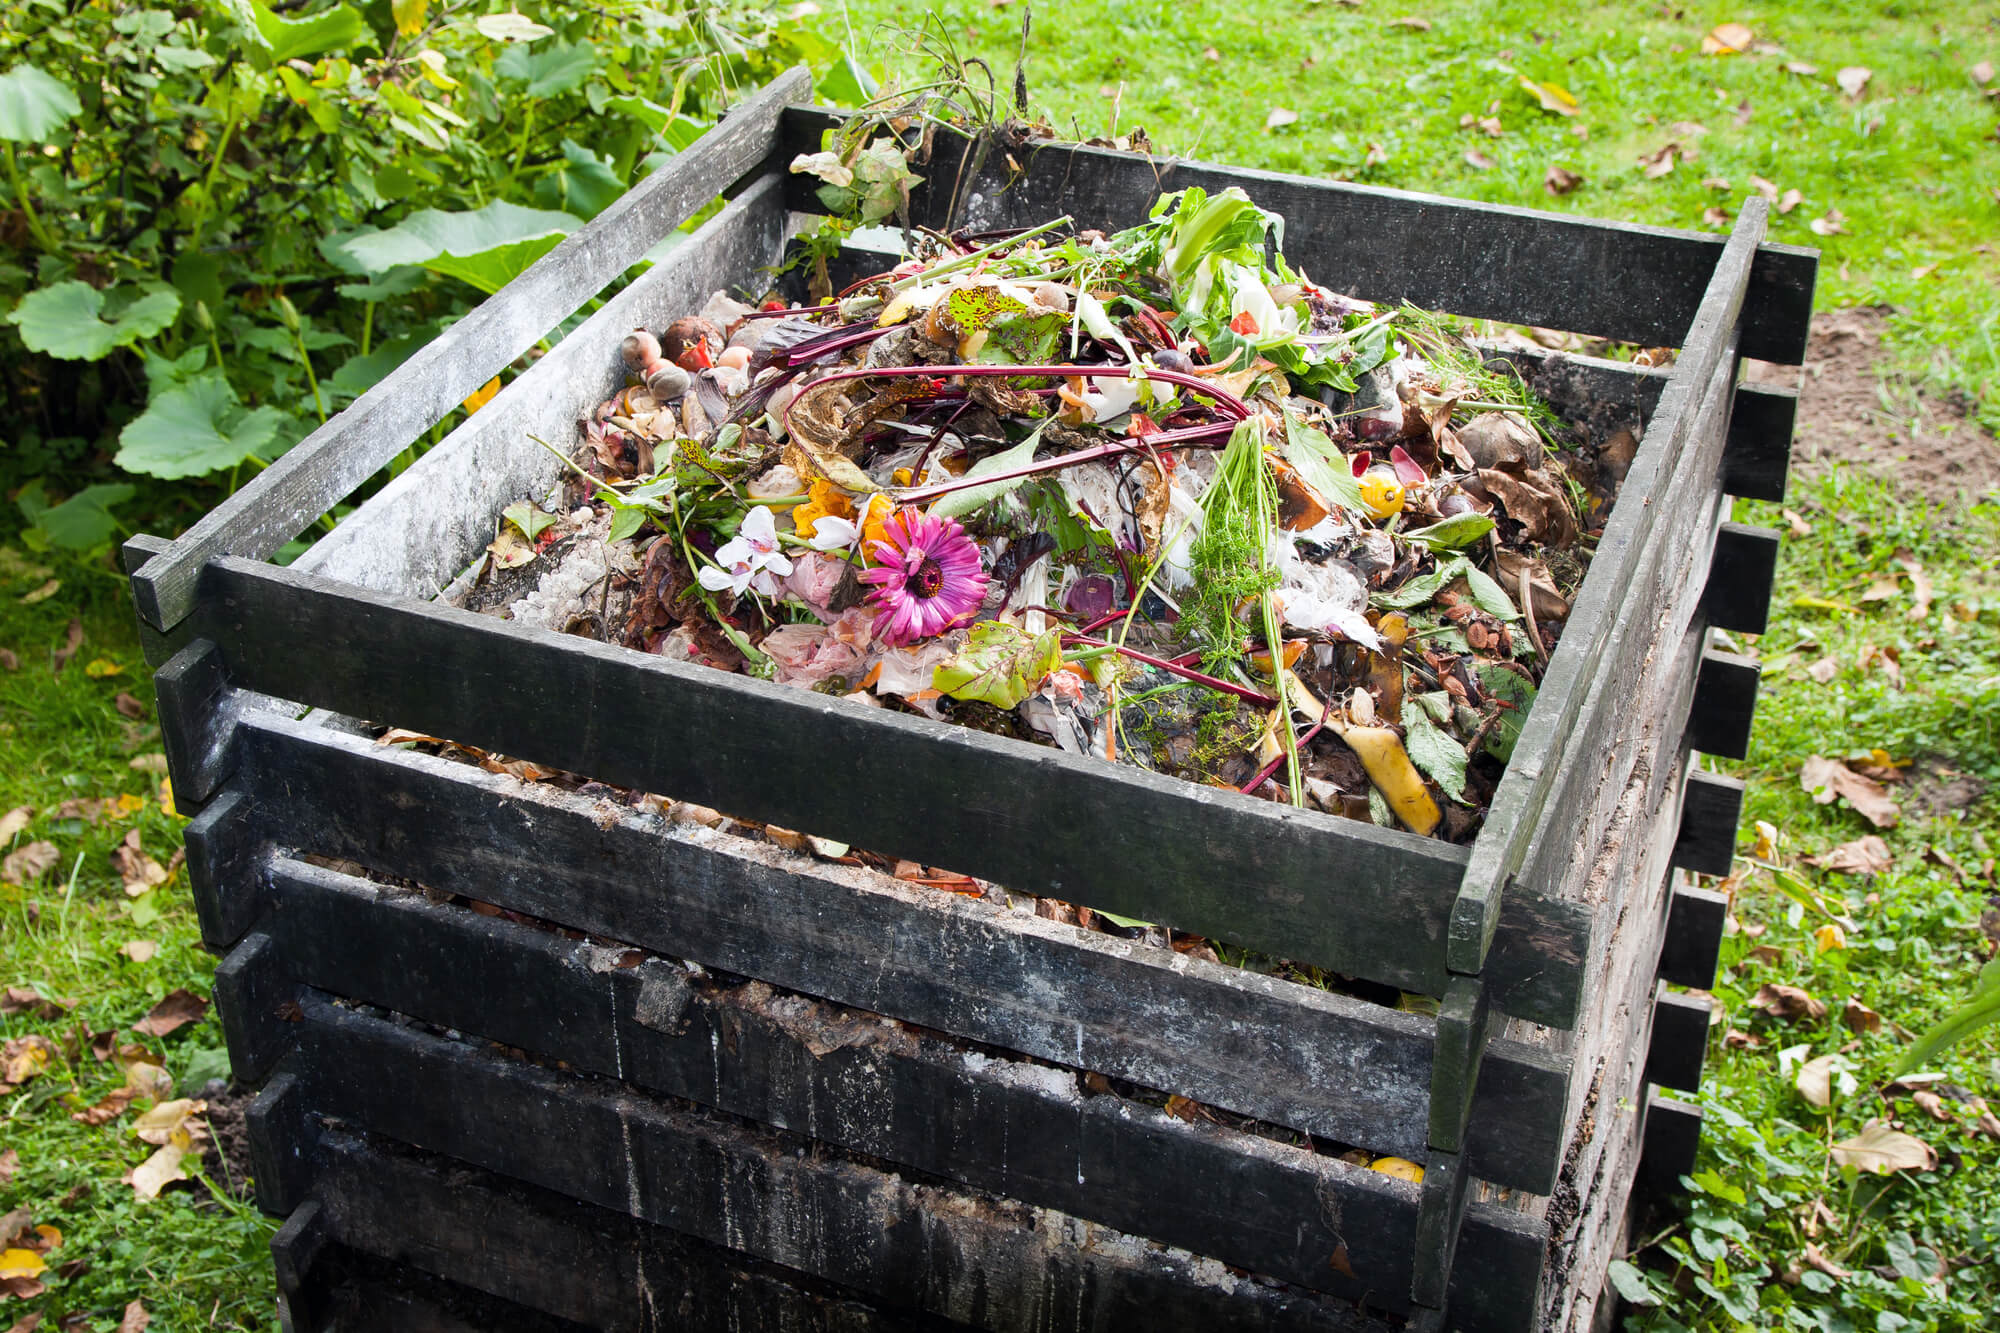 Worm Castings - Forget Composting